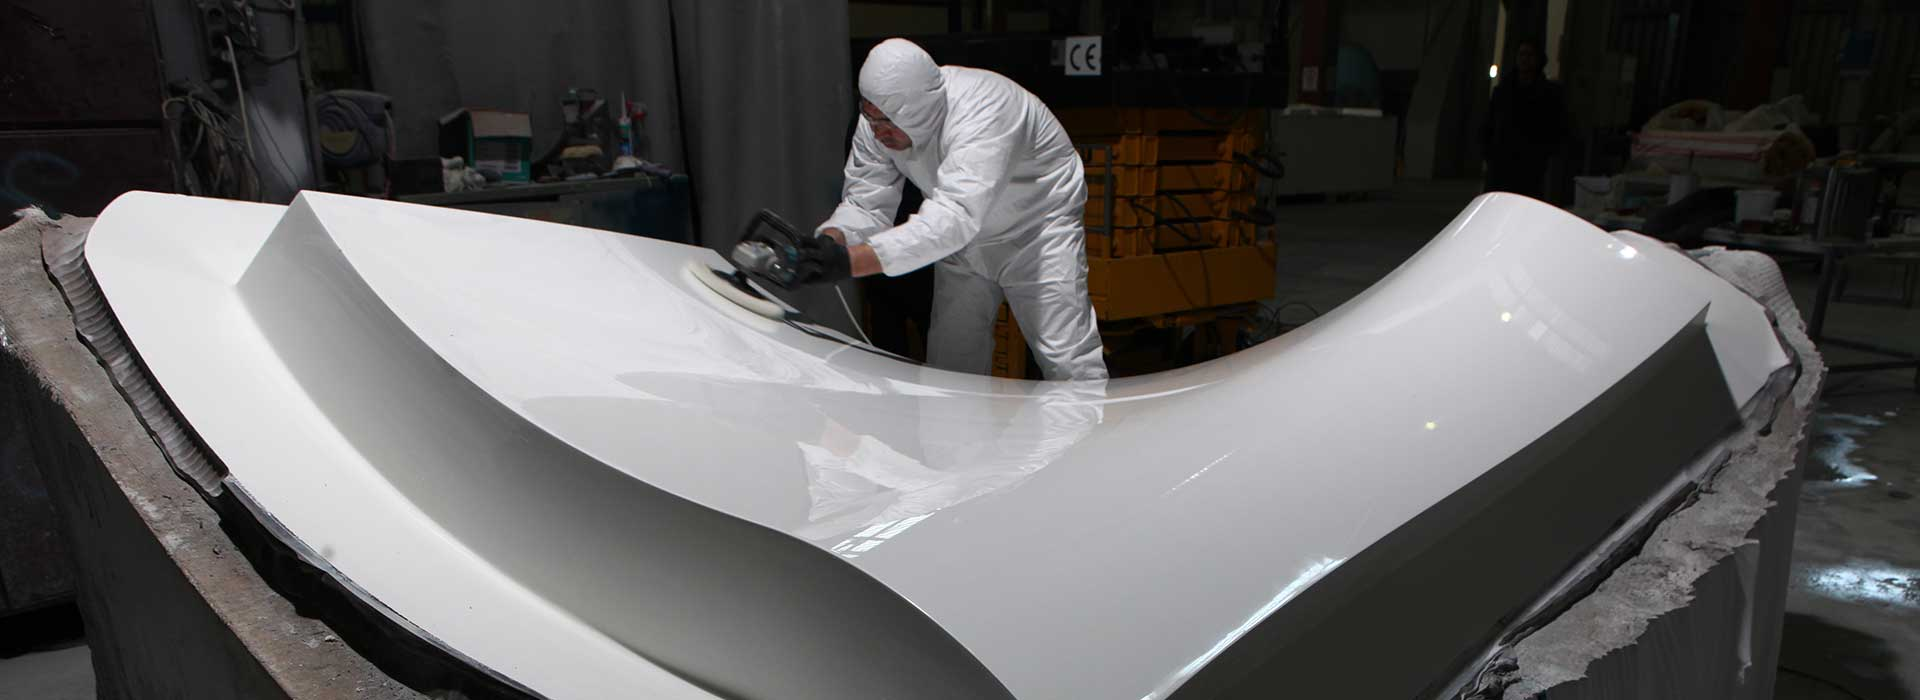 Connecting Composites - Tooling - © METYX Composites